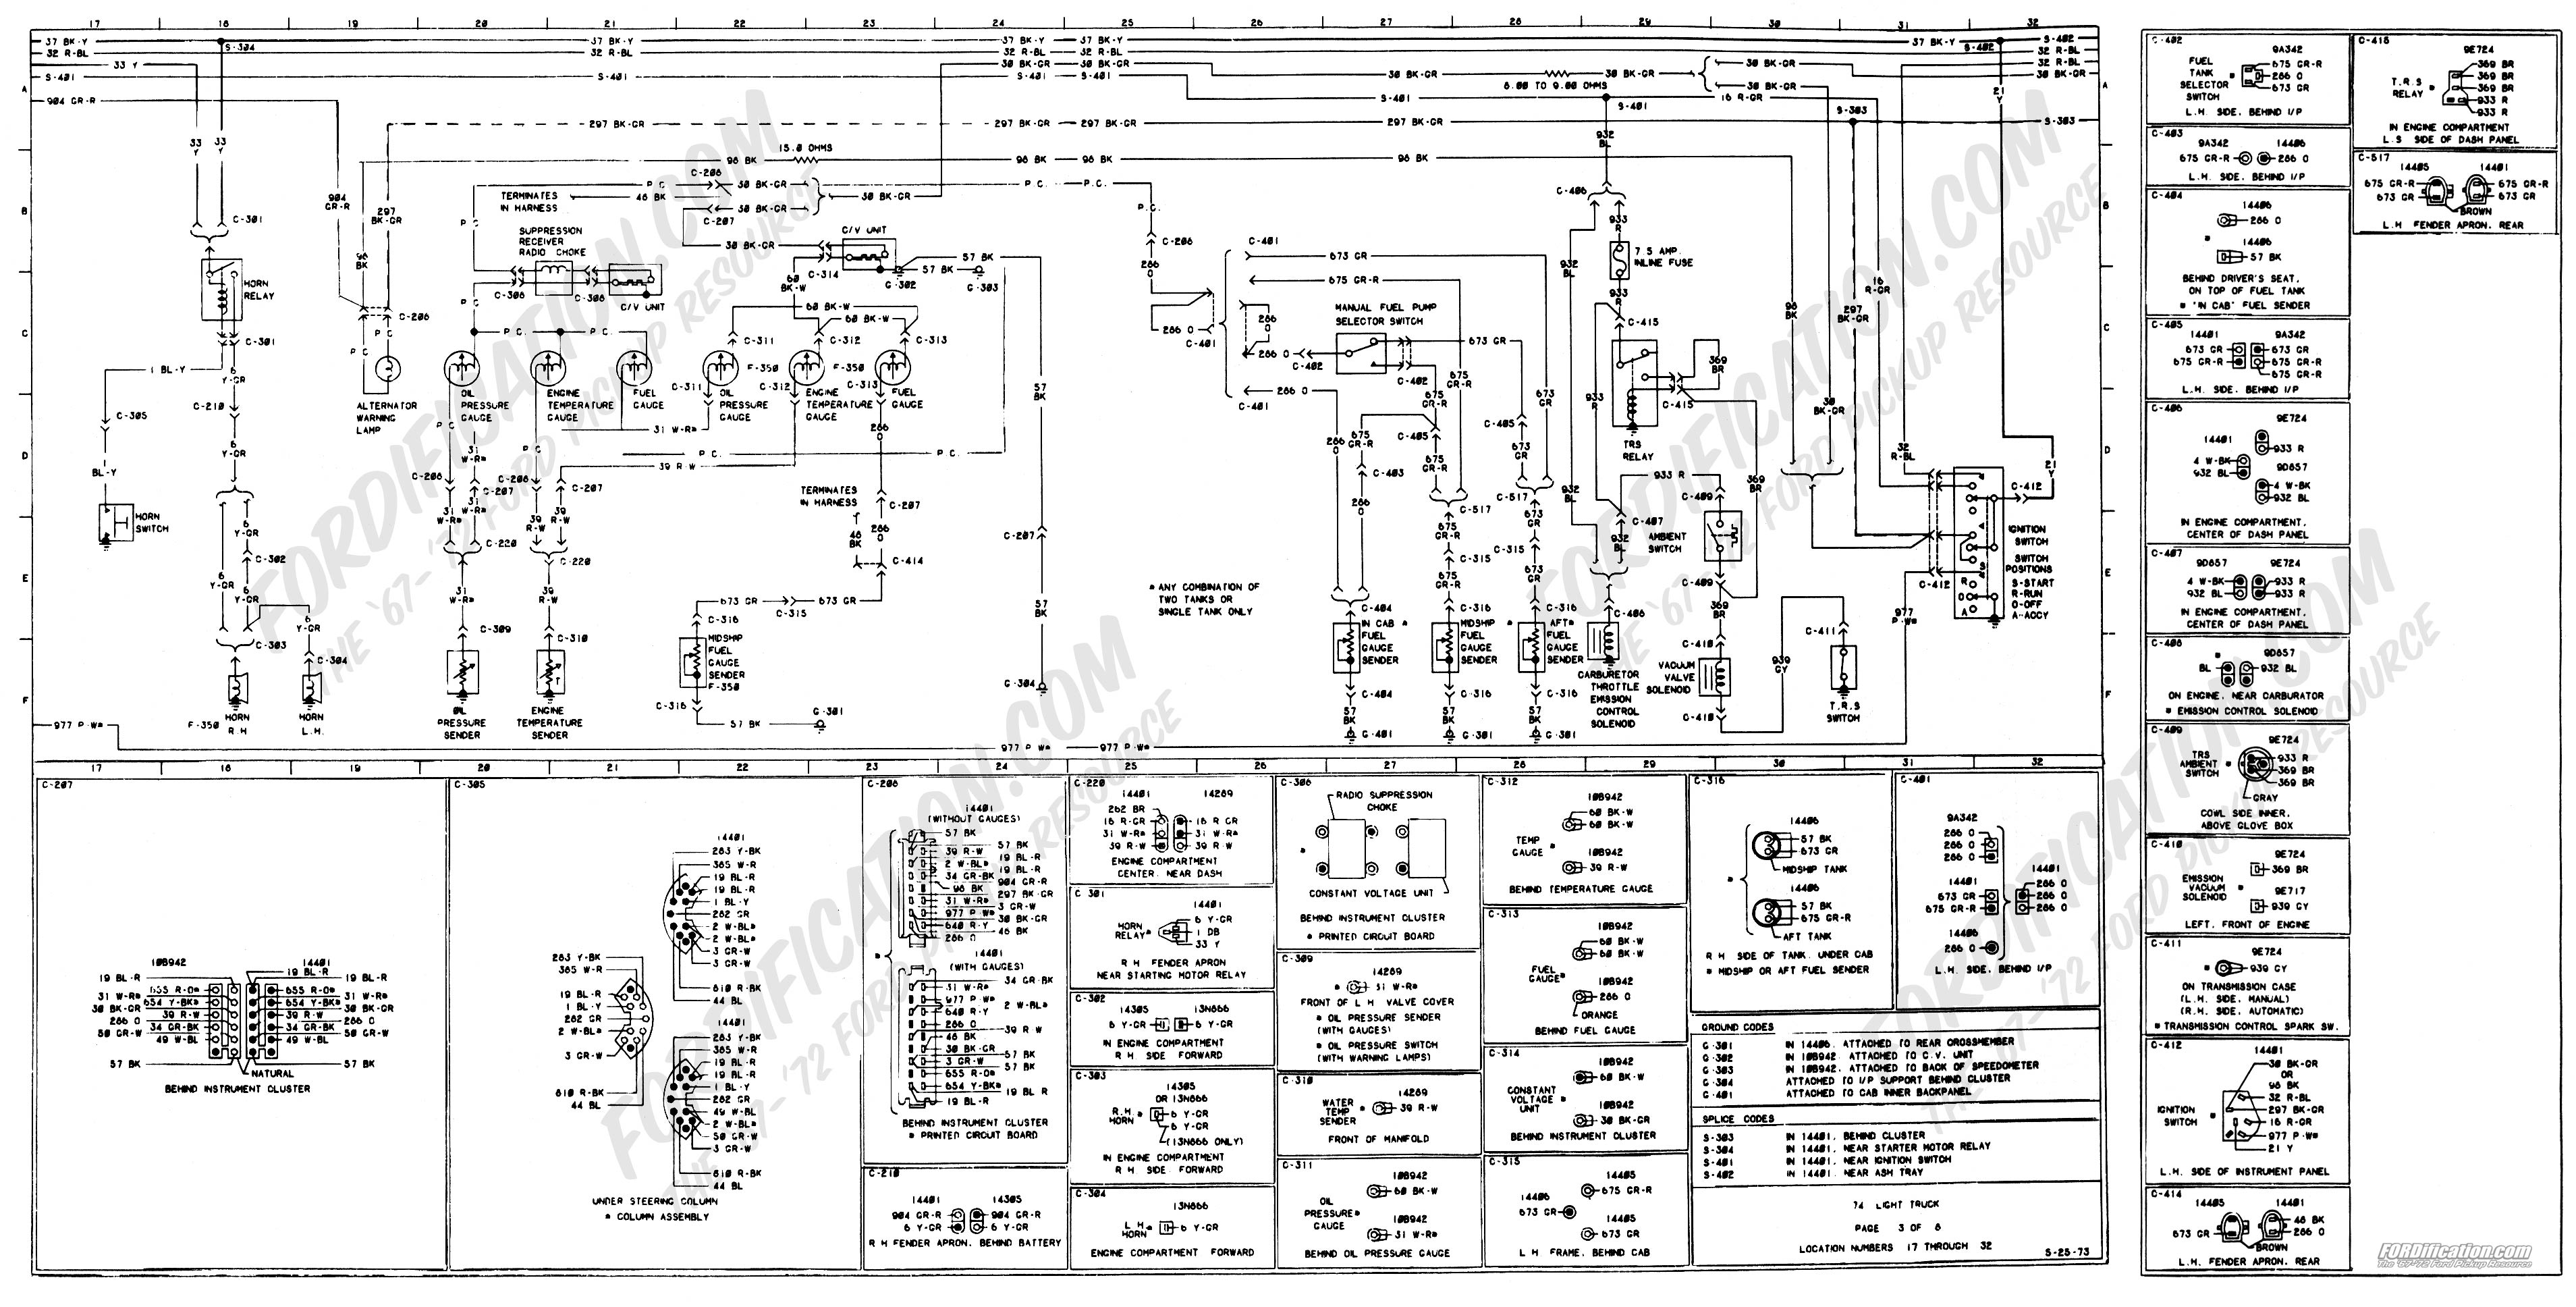 wiring_74master_3of8 1973 1979 ford truck wiring diagrams & schematics fordification net Ford Wiring Harness Diagrams at soozxer.org